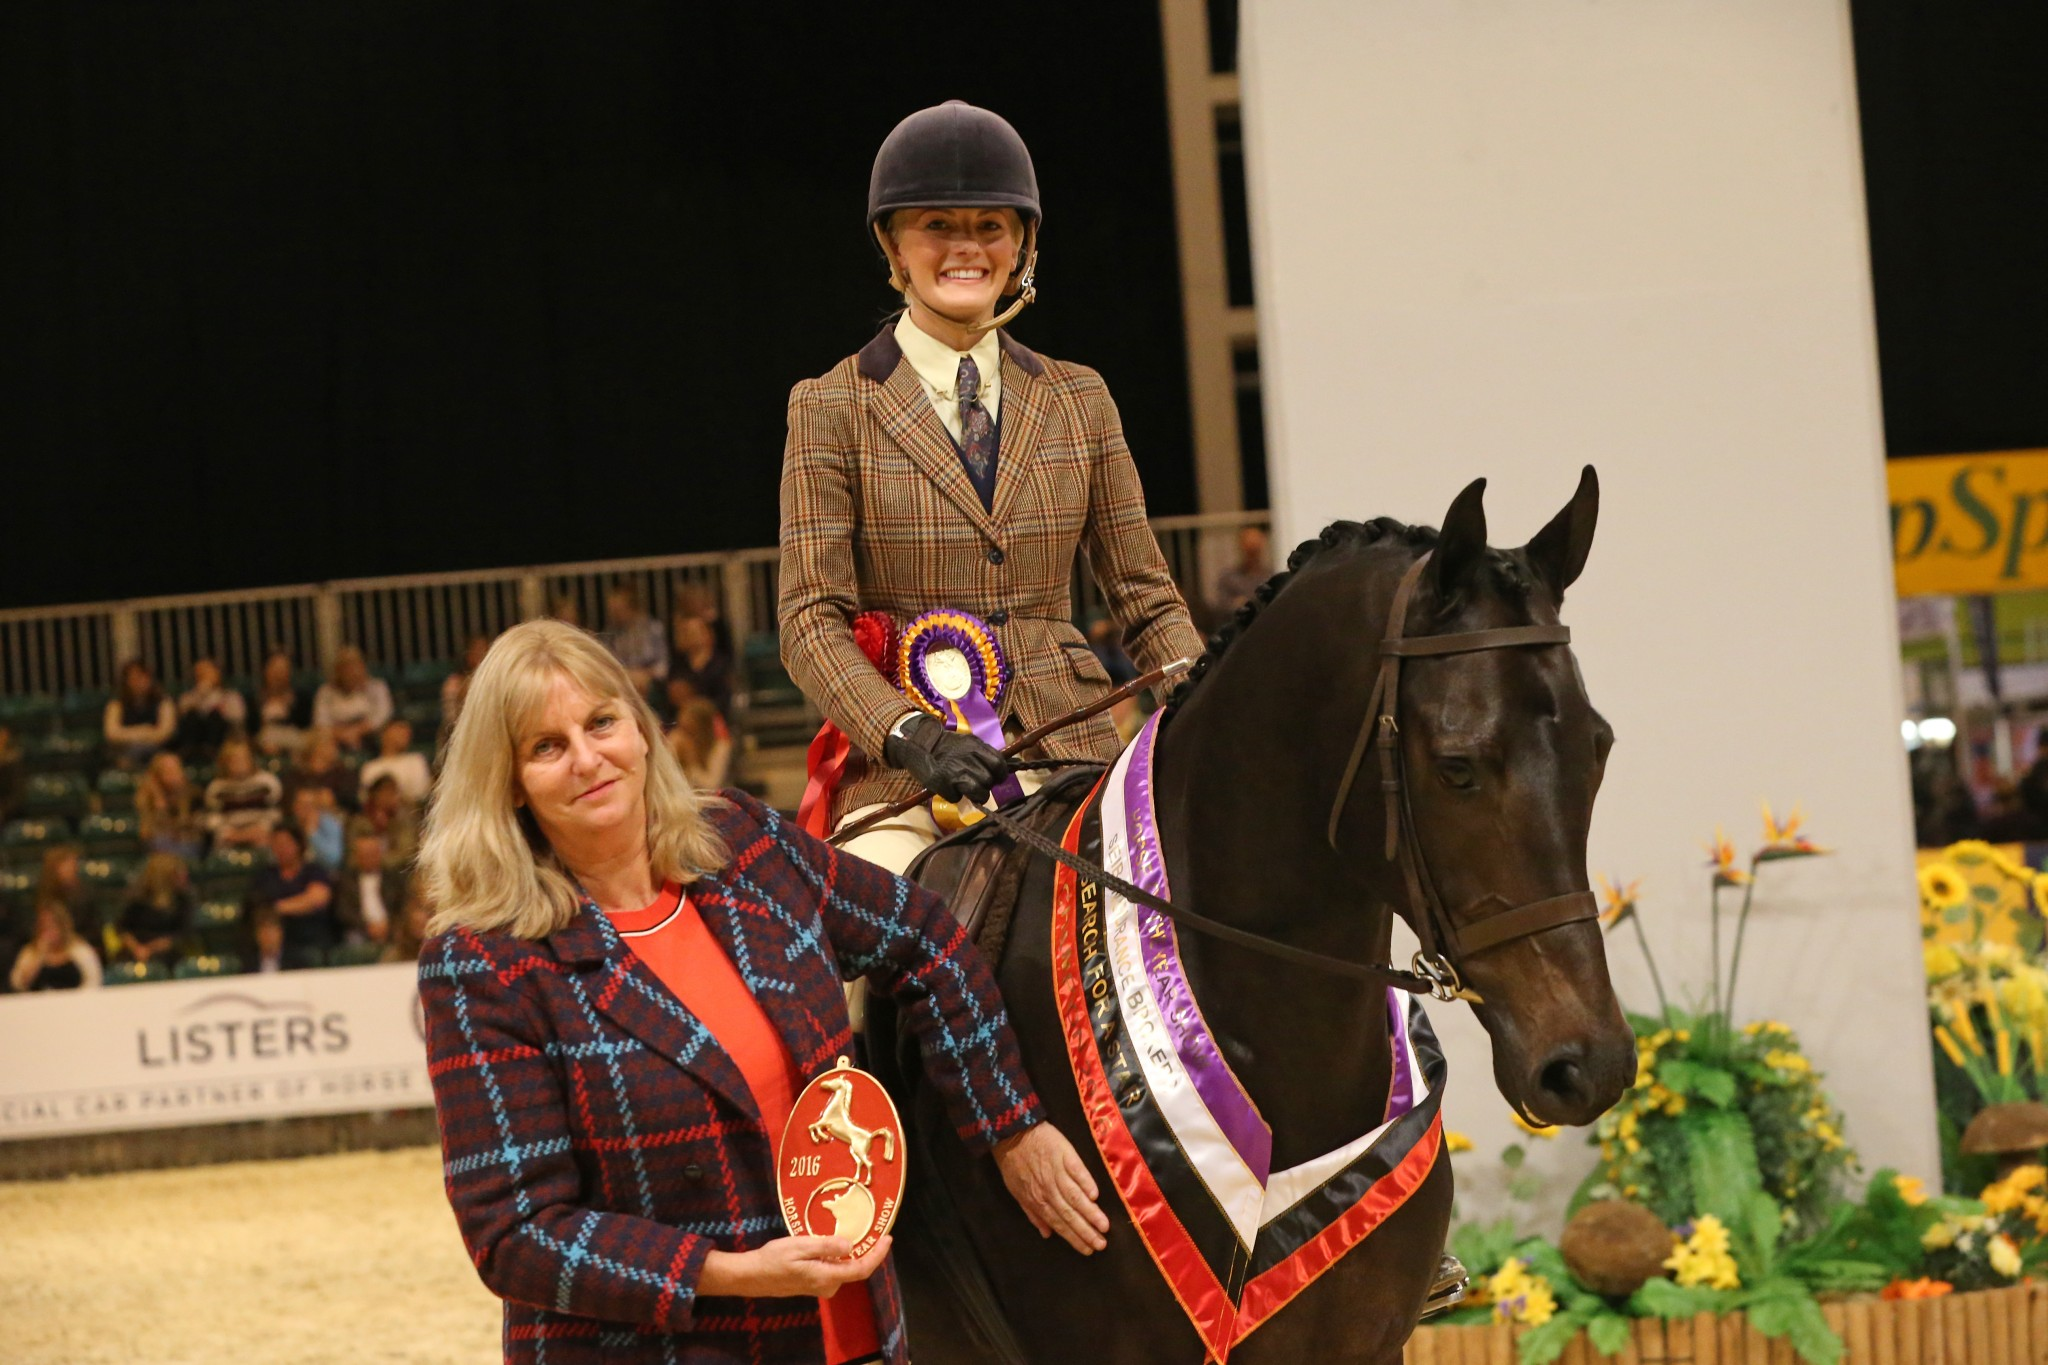 34b SEIB Search for a Star Riding Club Show Horse - Celebrations galore on day one of the SEIB Search for a Star classes